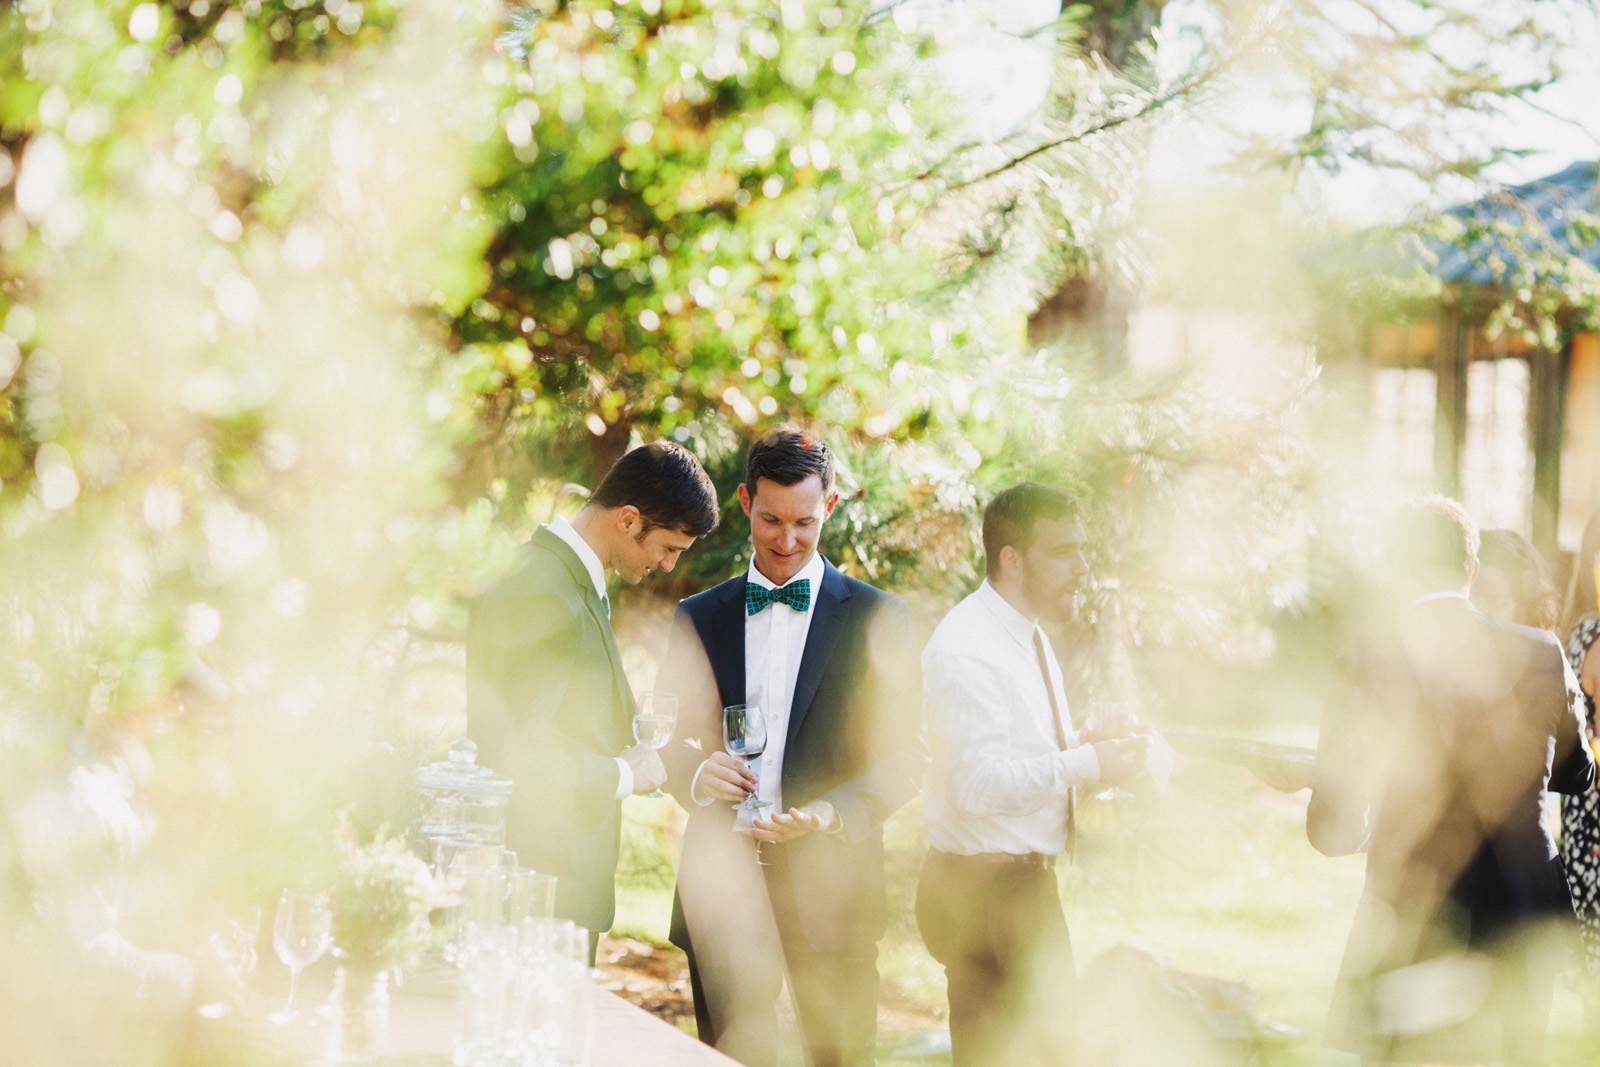 Intimate same-sex Island wedding  |  www.justloveweddings.ca